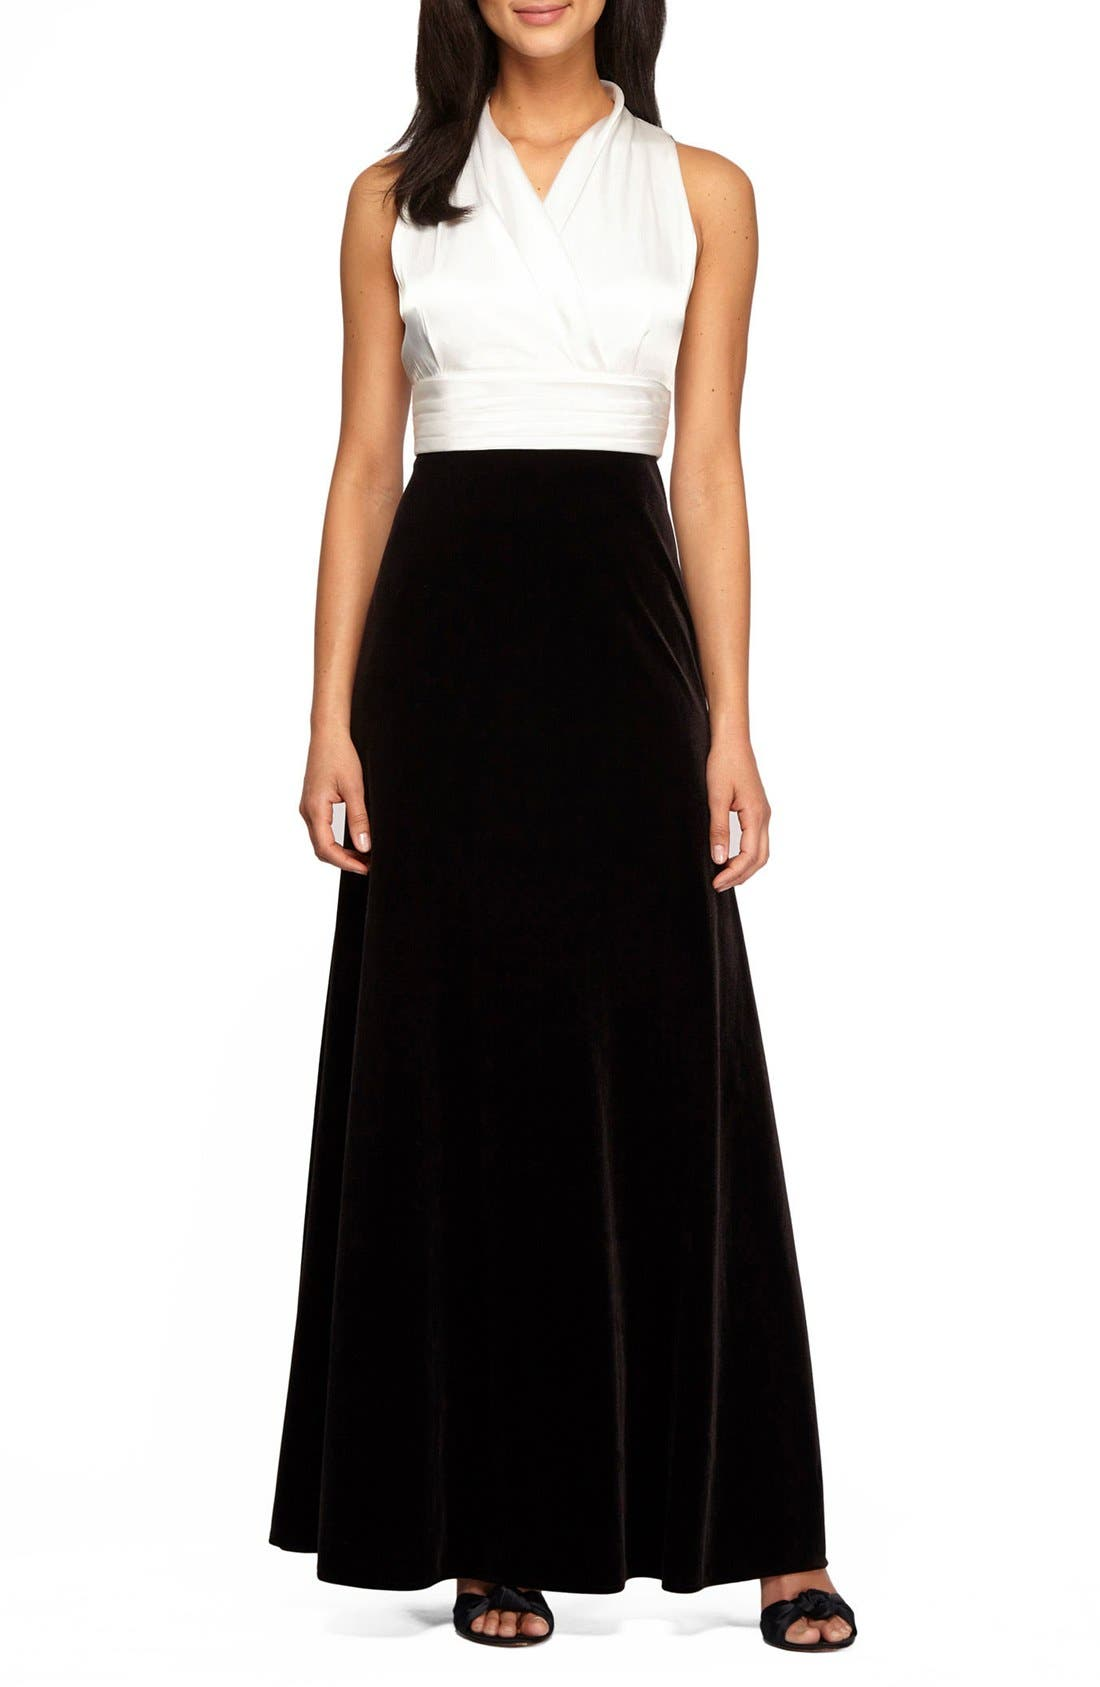 Alternate Image 1 Selected - Alex Evenings Stretch Fit & Flare Gown